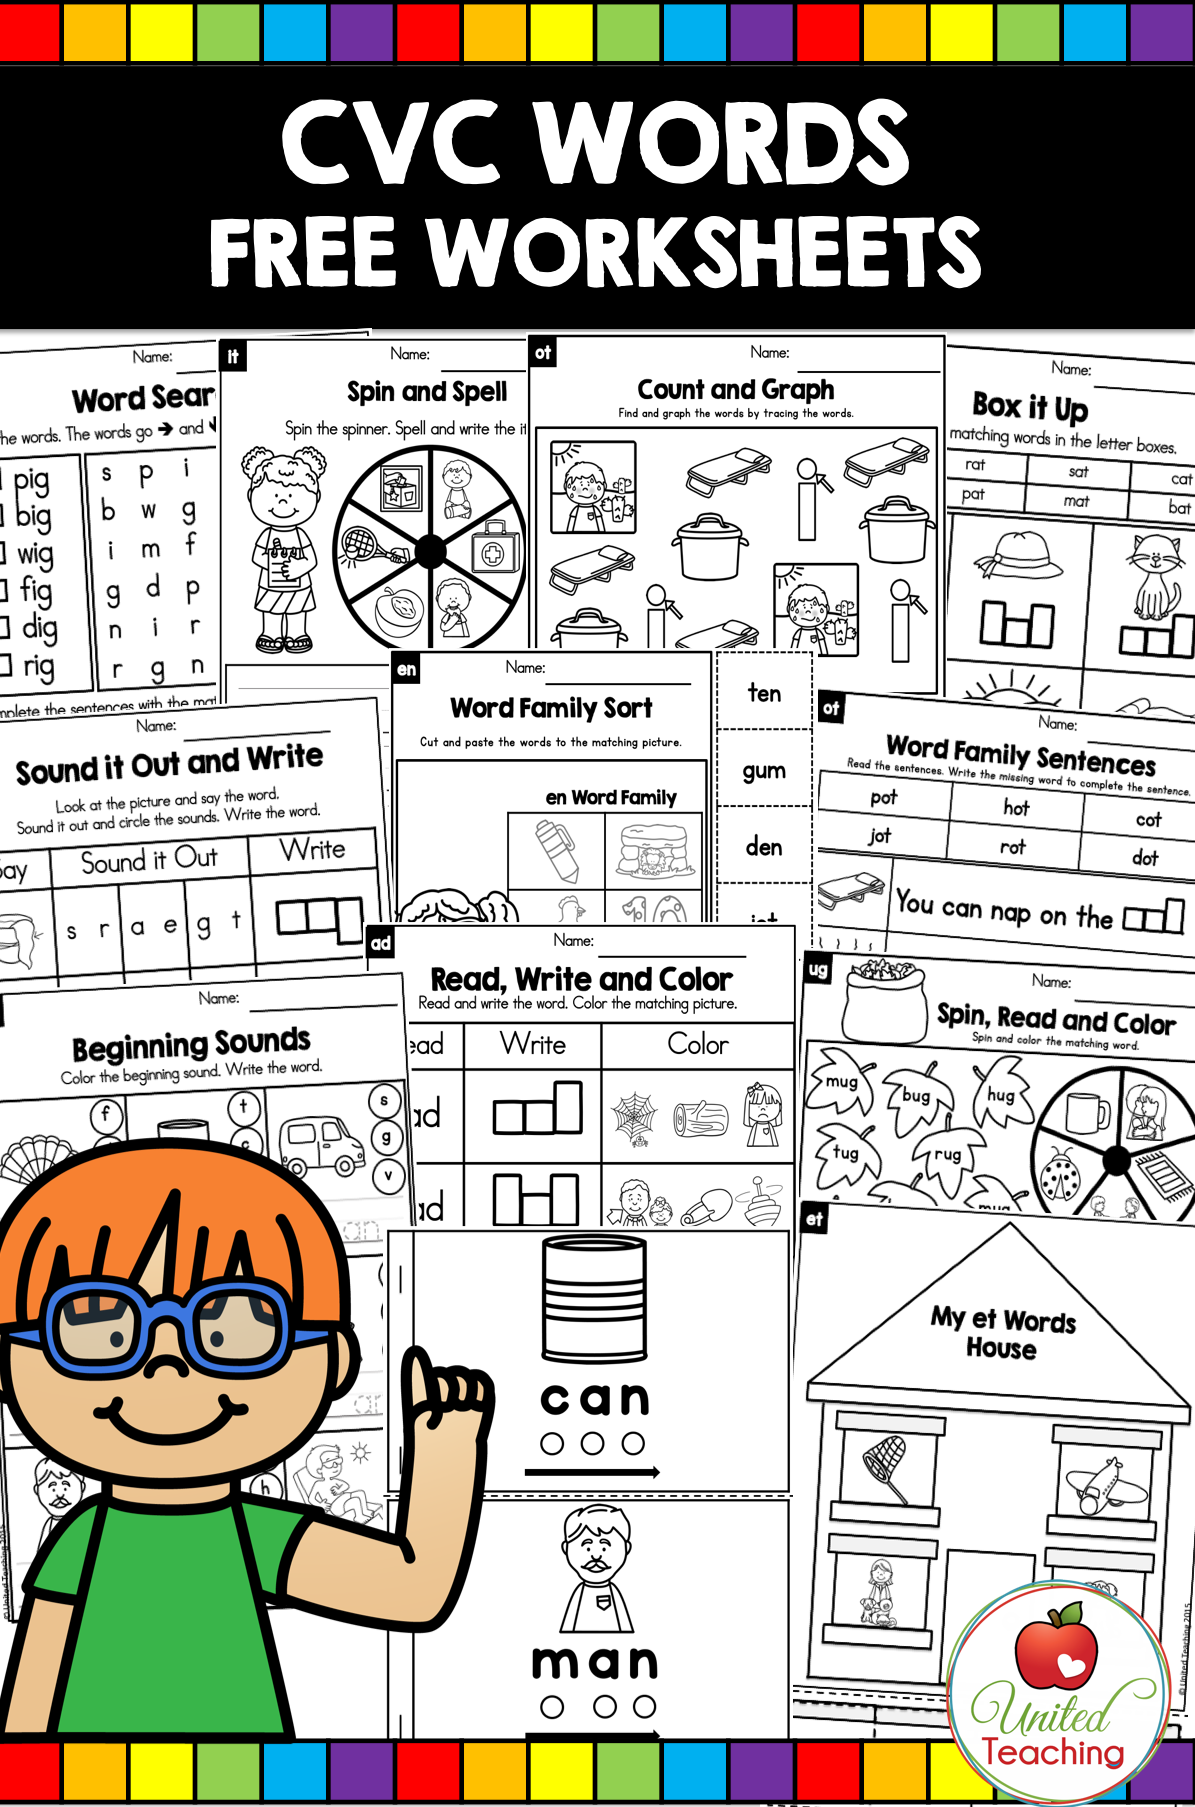 Cvc Words Worksheets Free